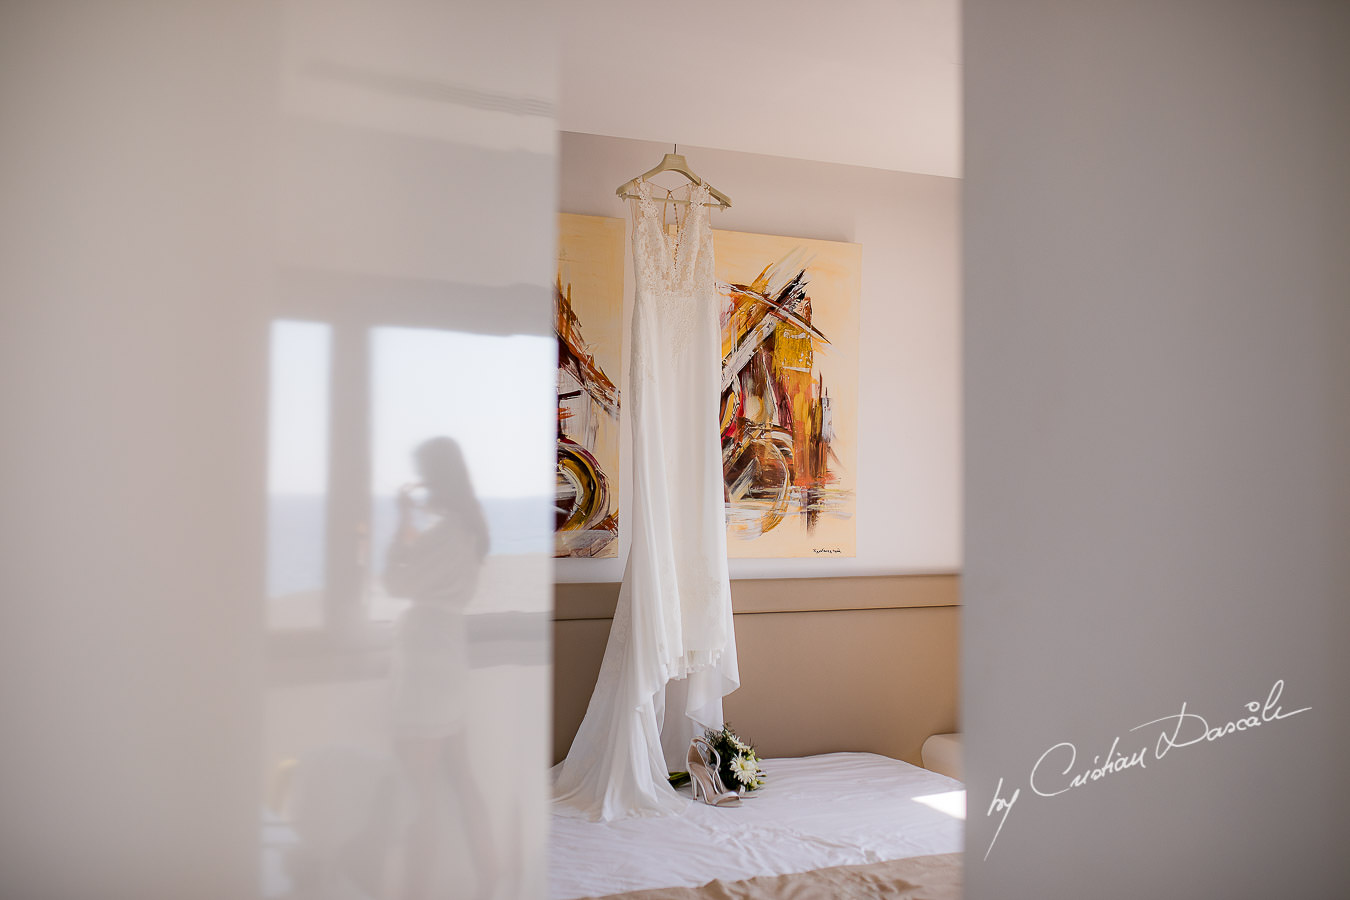 Bridal Dress photographed by Cyprus Photographer Cristian Dascalu during a beautiful wedding at Cap St. George in Paphos.